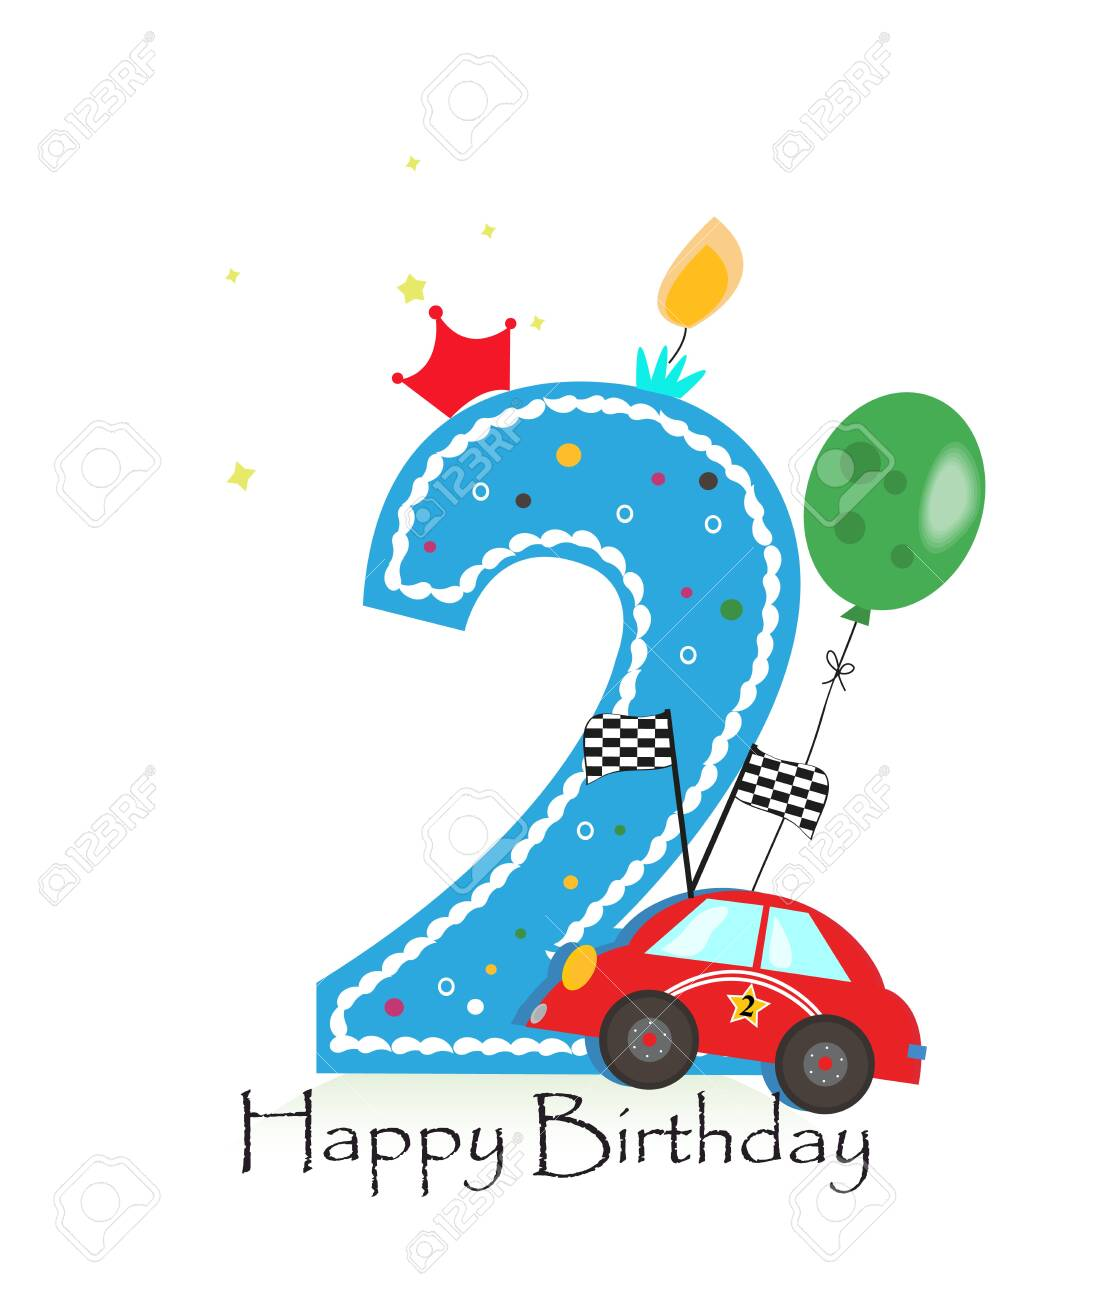 Happy second birthday candle. Baby boy greeting card with race car illustratio - 148630454